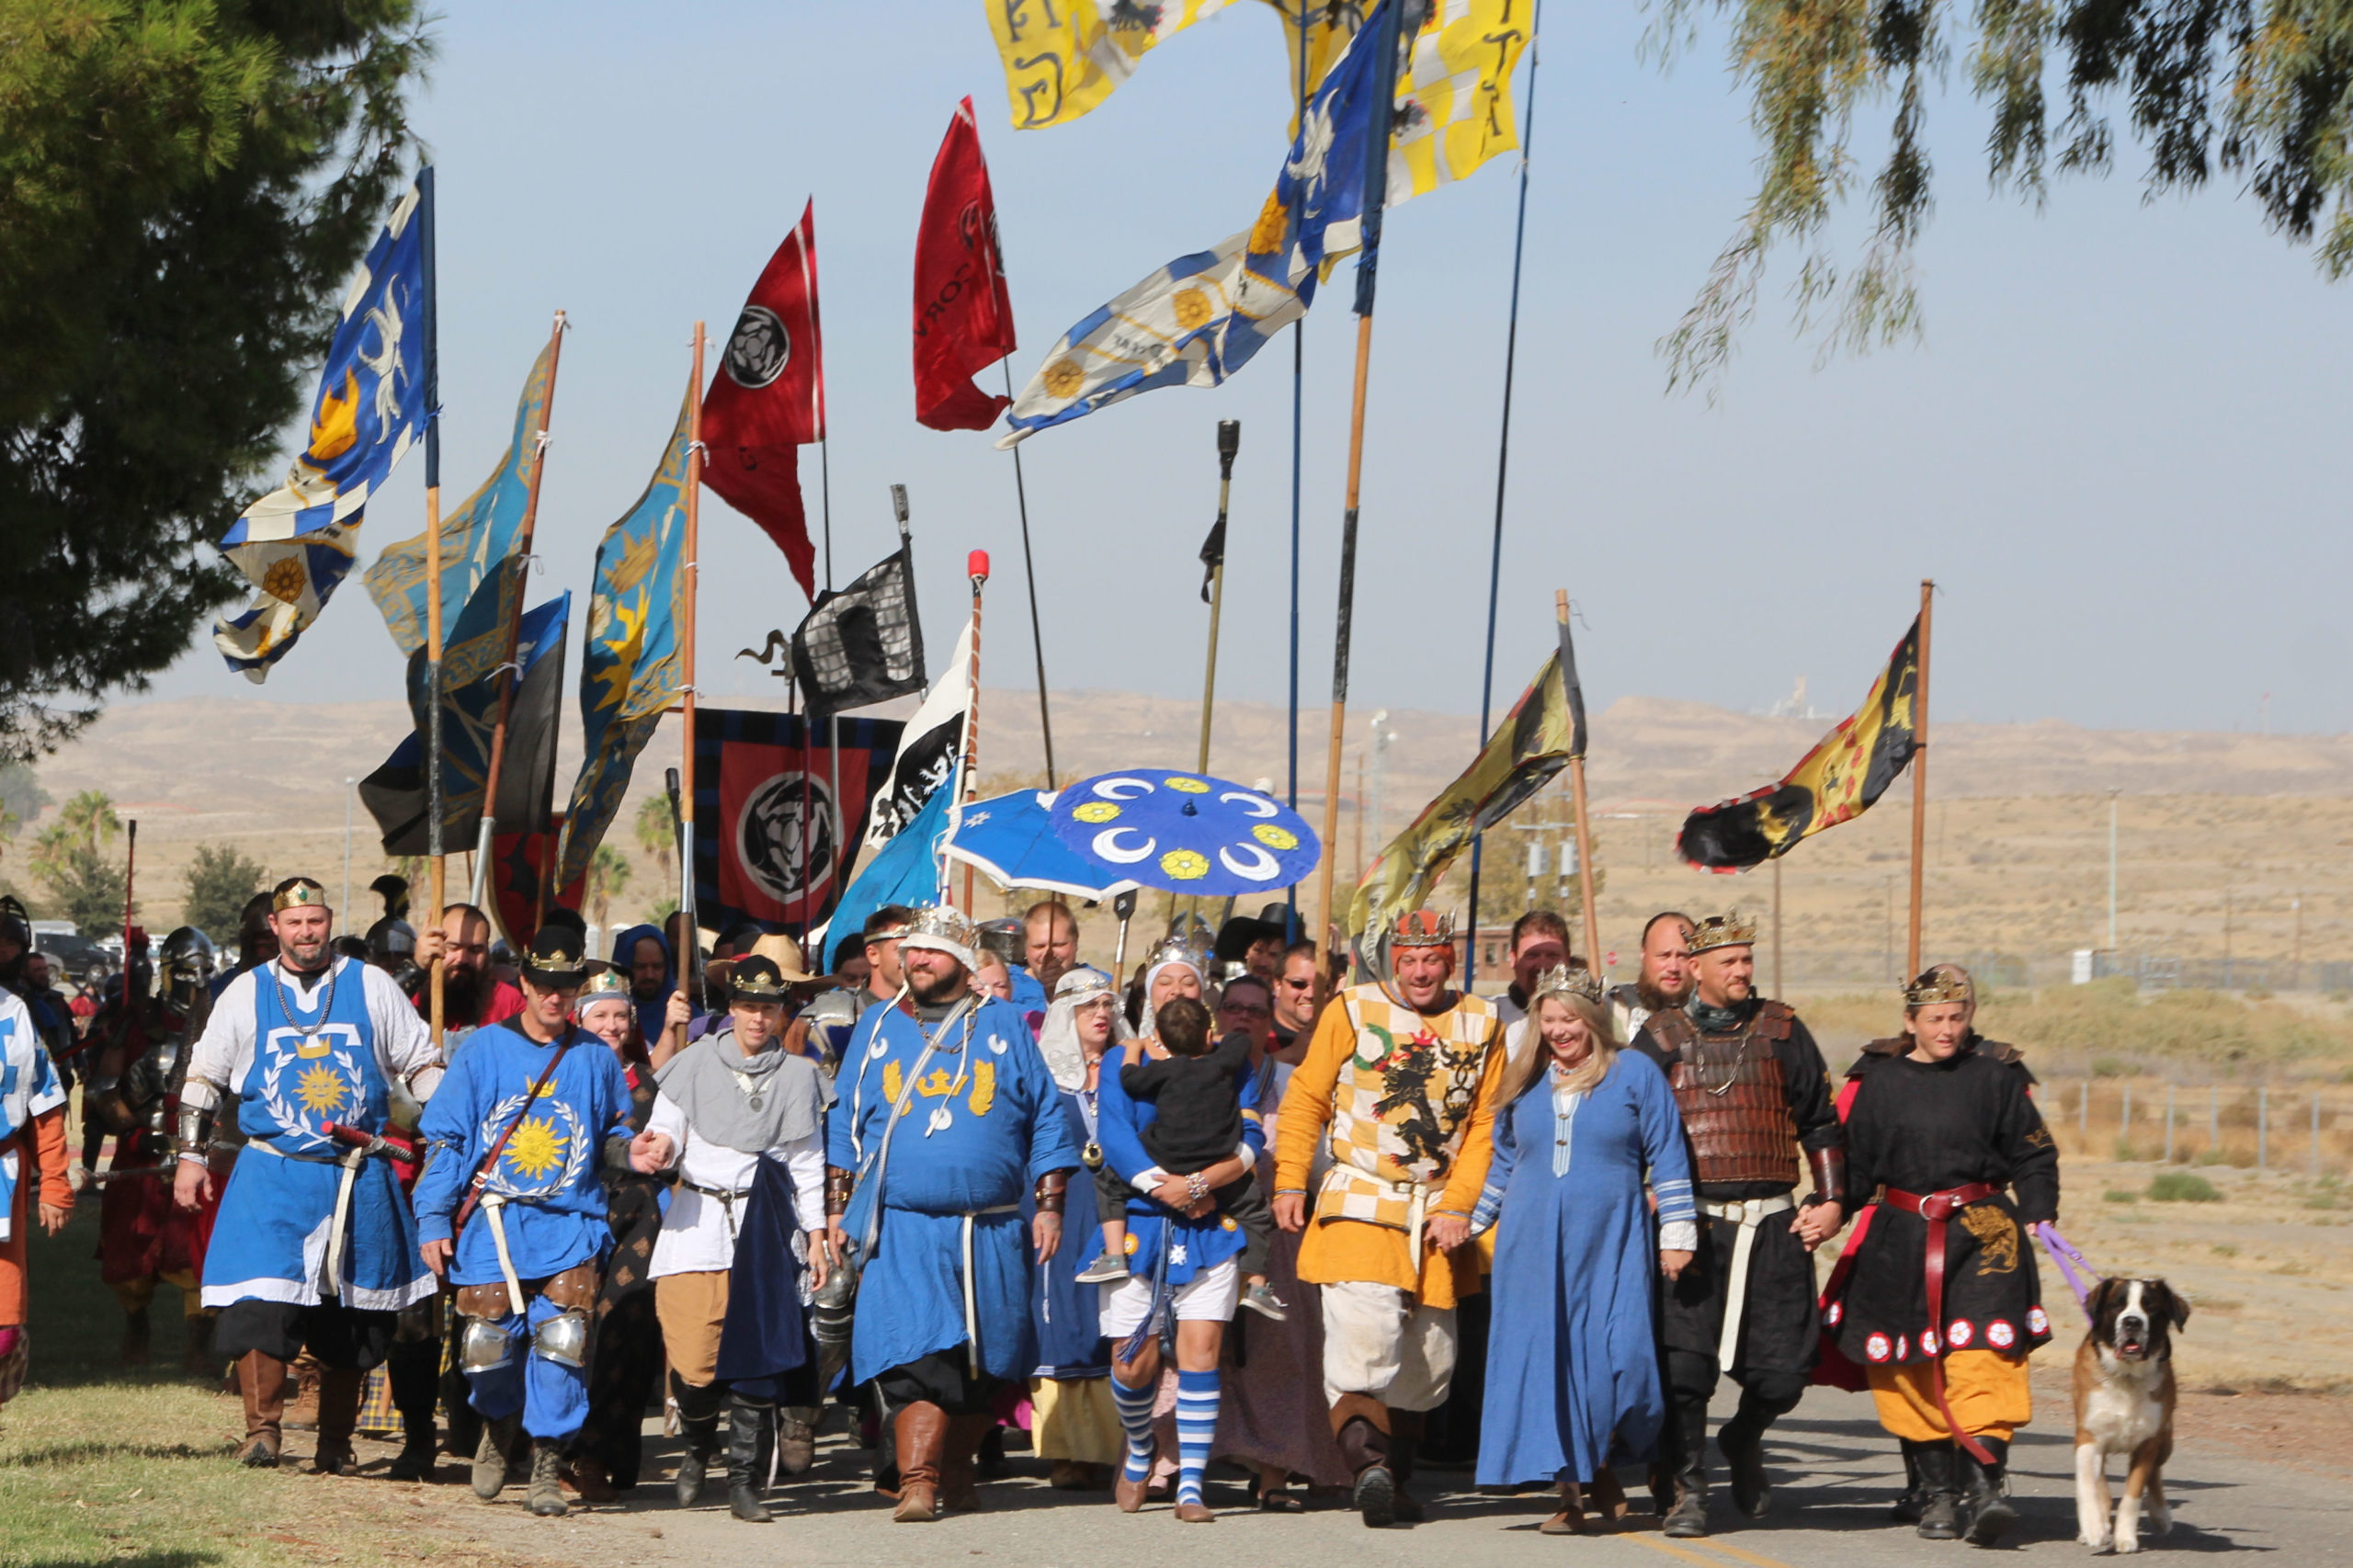 Royalty processing onto the battlefield at Great Western War, banners flying behind them as they march